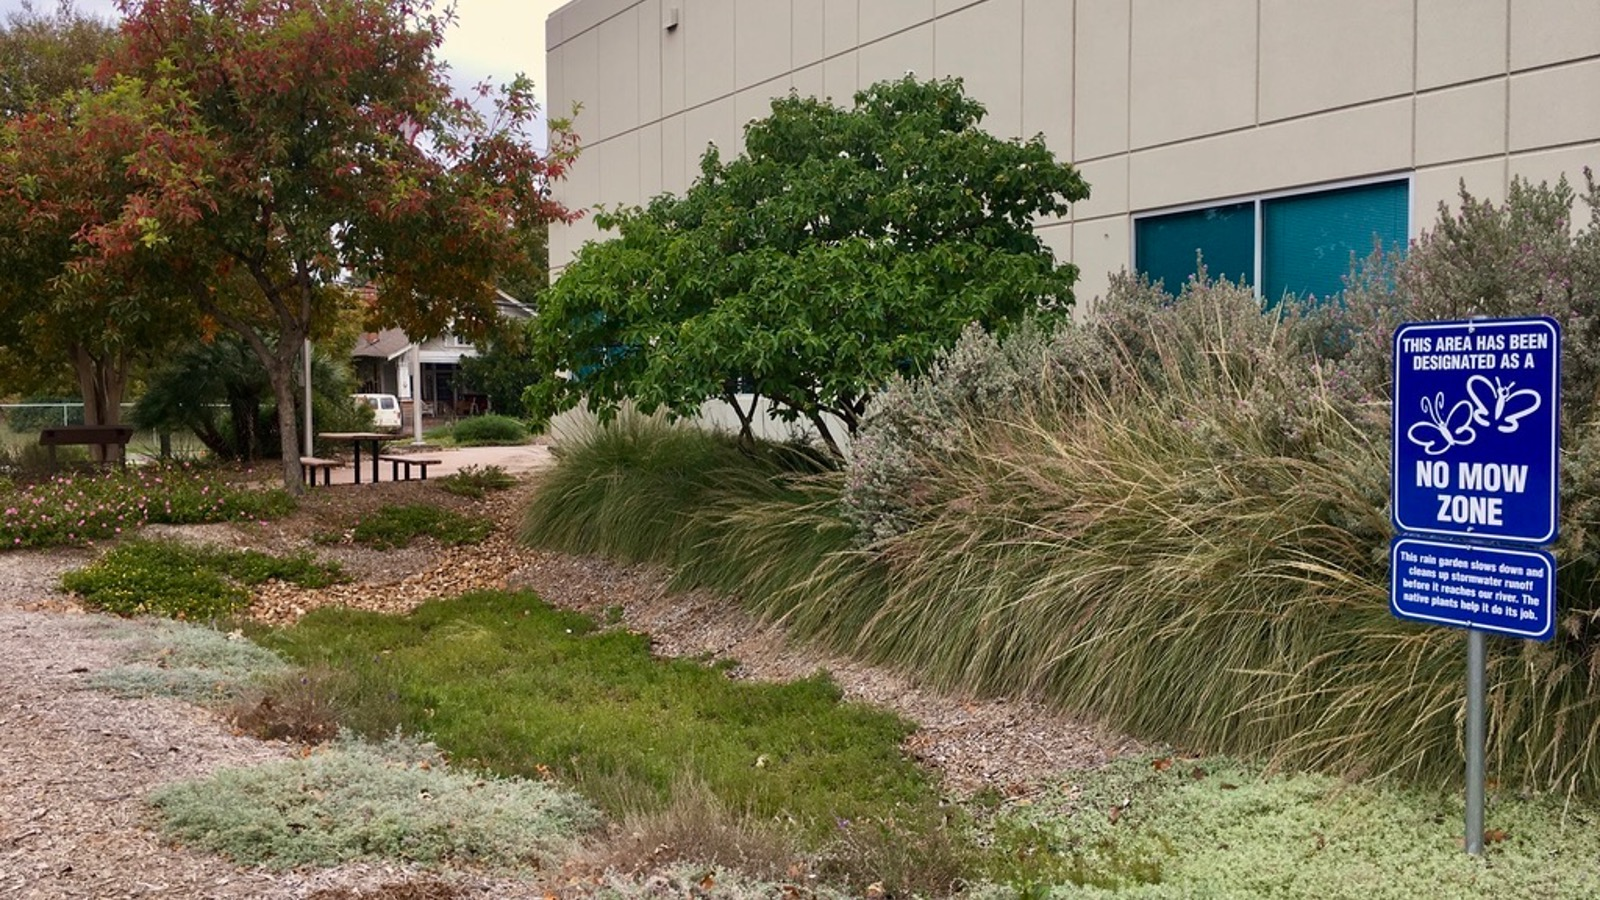 <h4>WATER POLLUTION</h4><h5>Rain gardens and other nature-based features can filter out up to 90% of pollutants in stormwater runoff.</h5><em>Anna Farrell-Sherman / Staff</em>